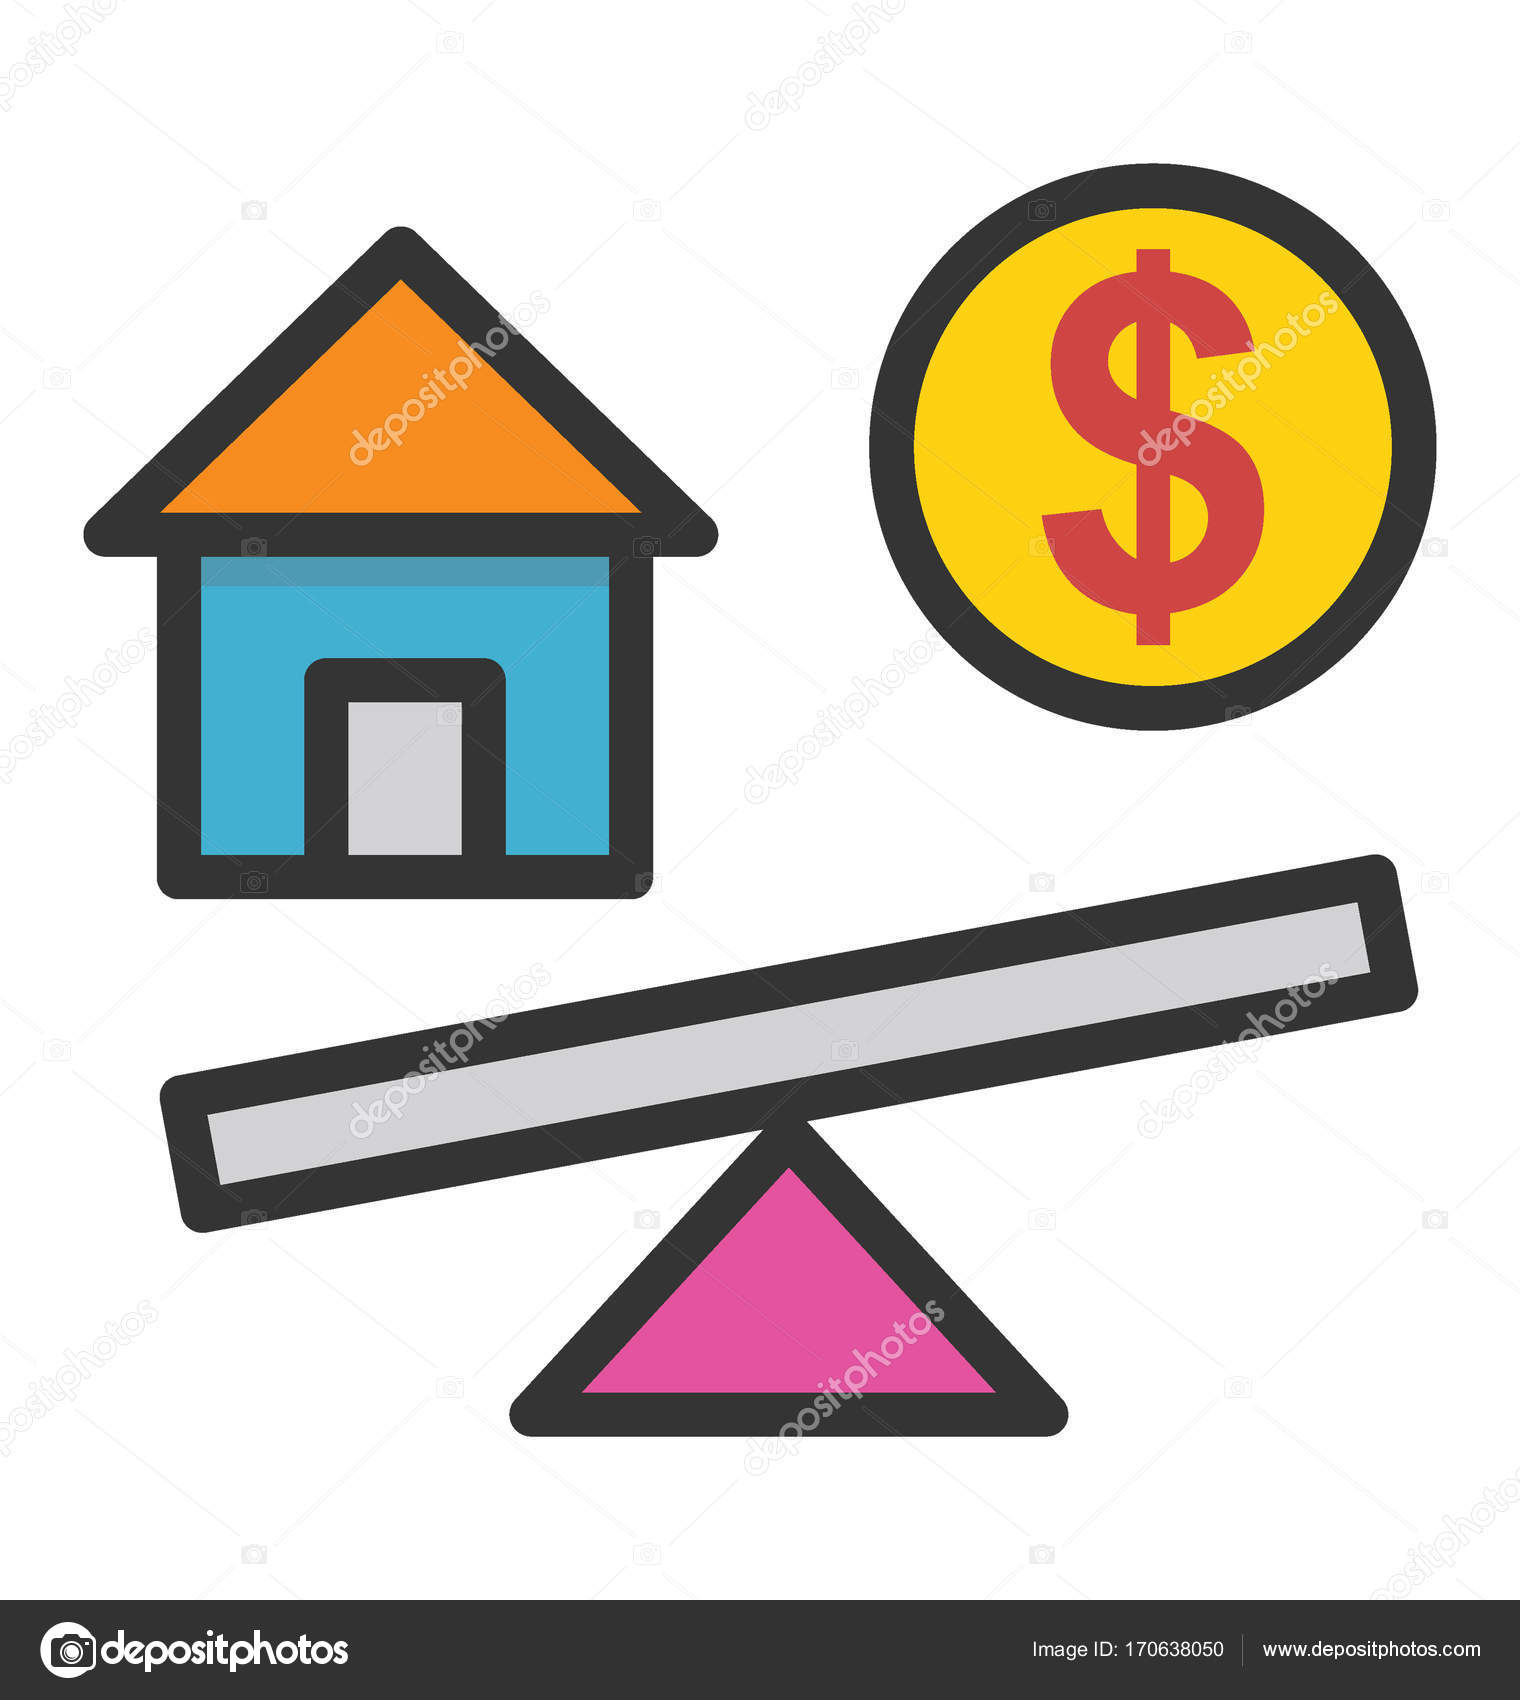 Property Assessment Vector Icon Stock Vector C Vectorsmarket 170638050 Browse our animated assessment images, graphics, and designs from +79.322 free vectors graphics. https depositphotos com 170638050 stock illustration property assessment vector icon html